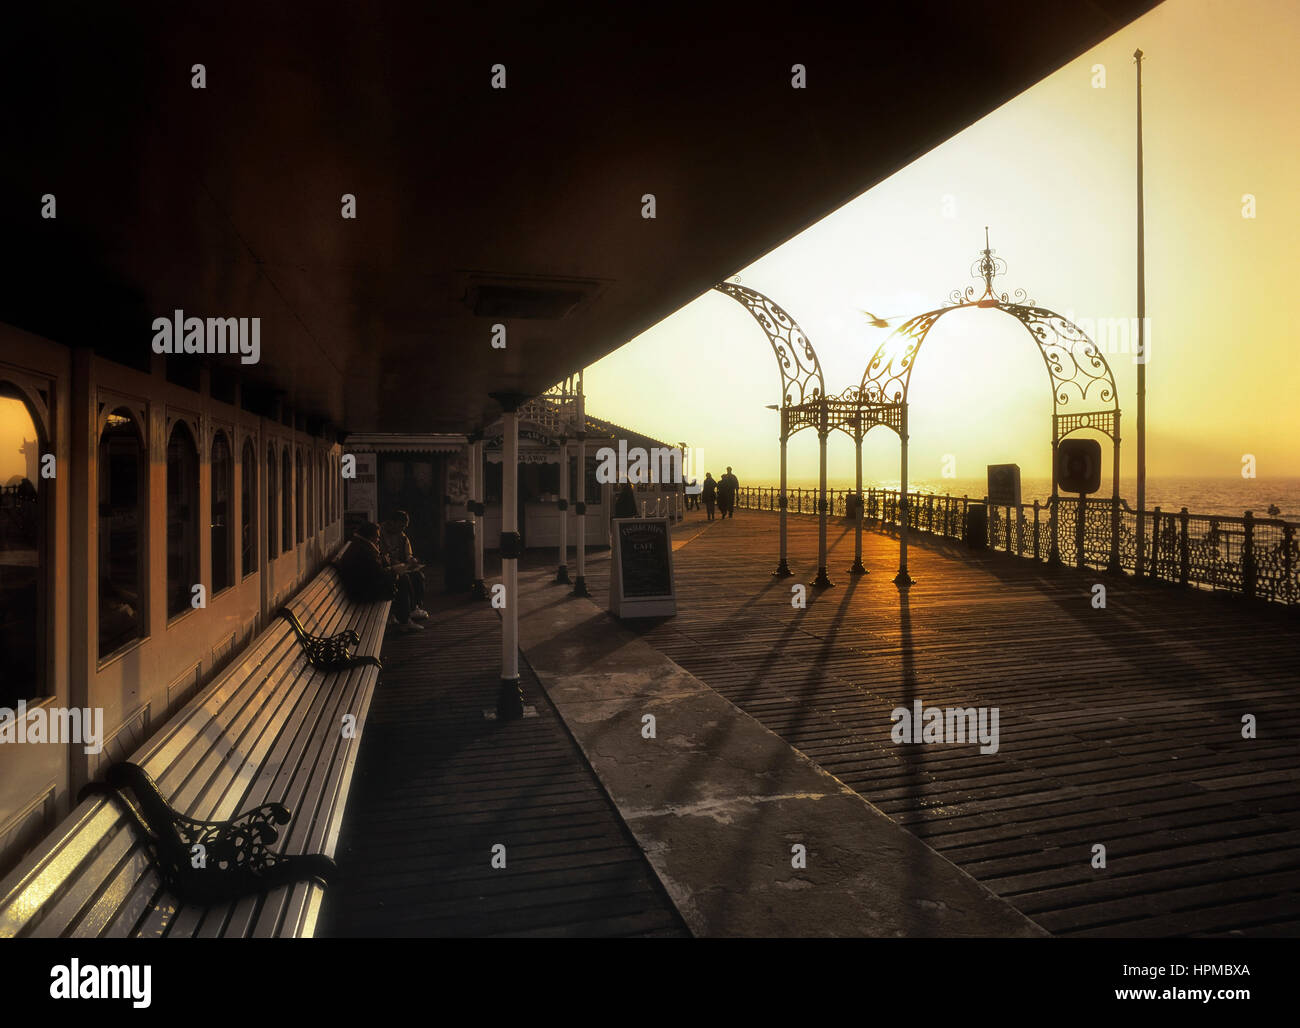 Palace Pier. Brighton. Sussex. England. UK Stockbild